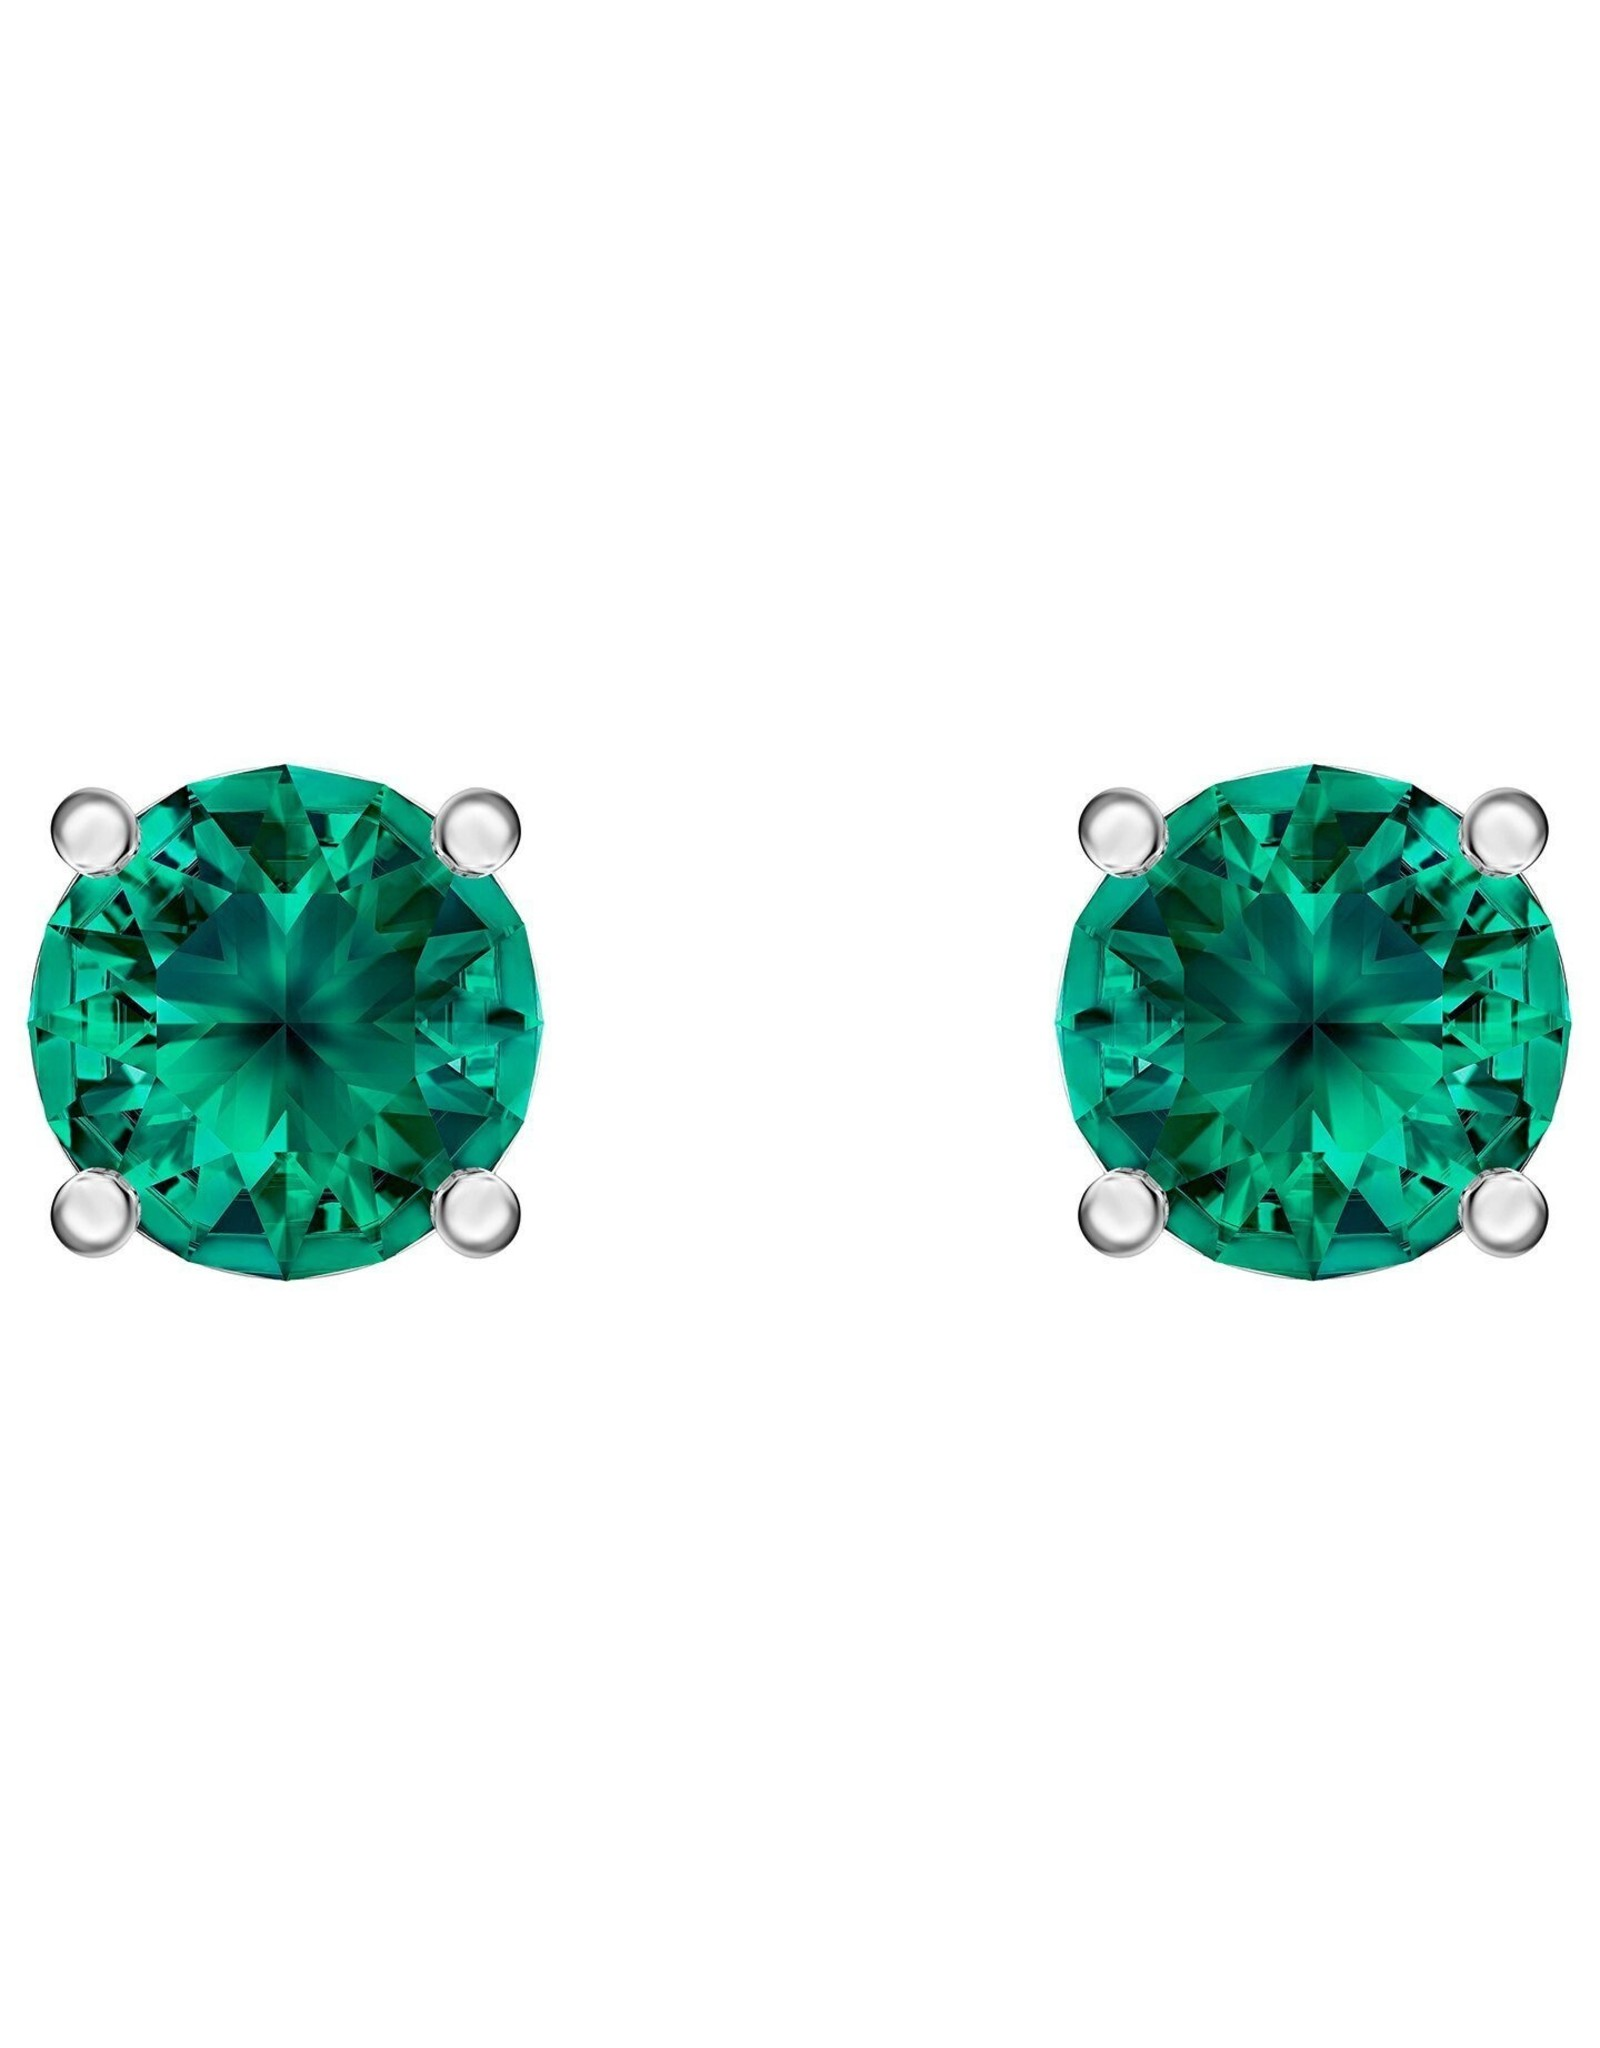 Swarovski Swarovski Attract Studs Earrings (Green)